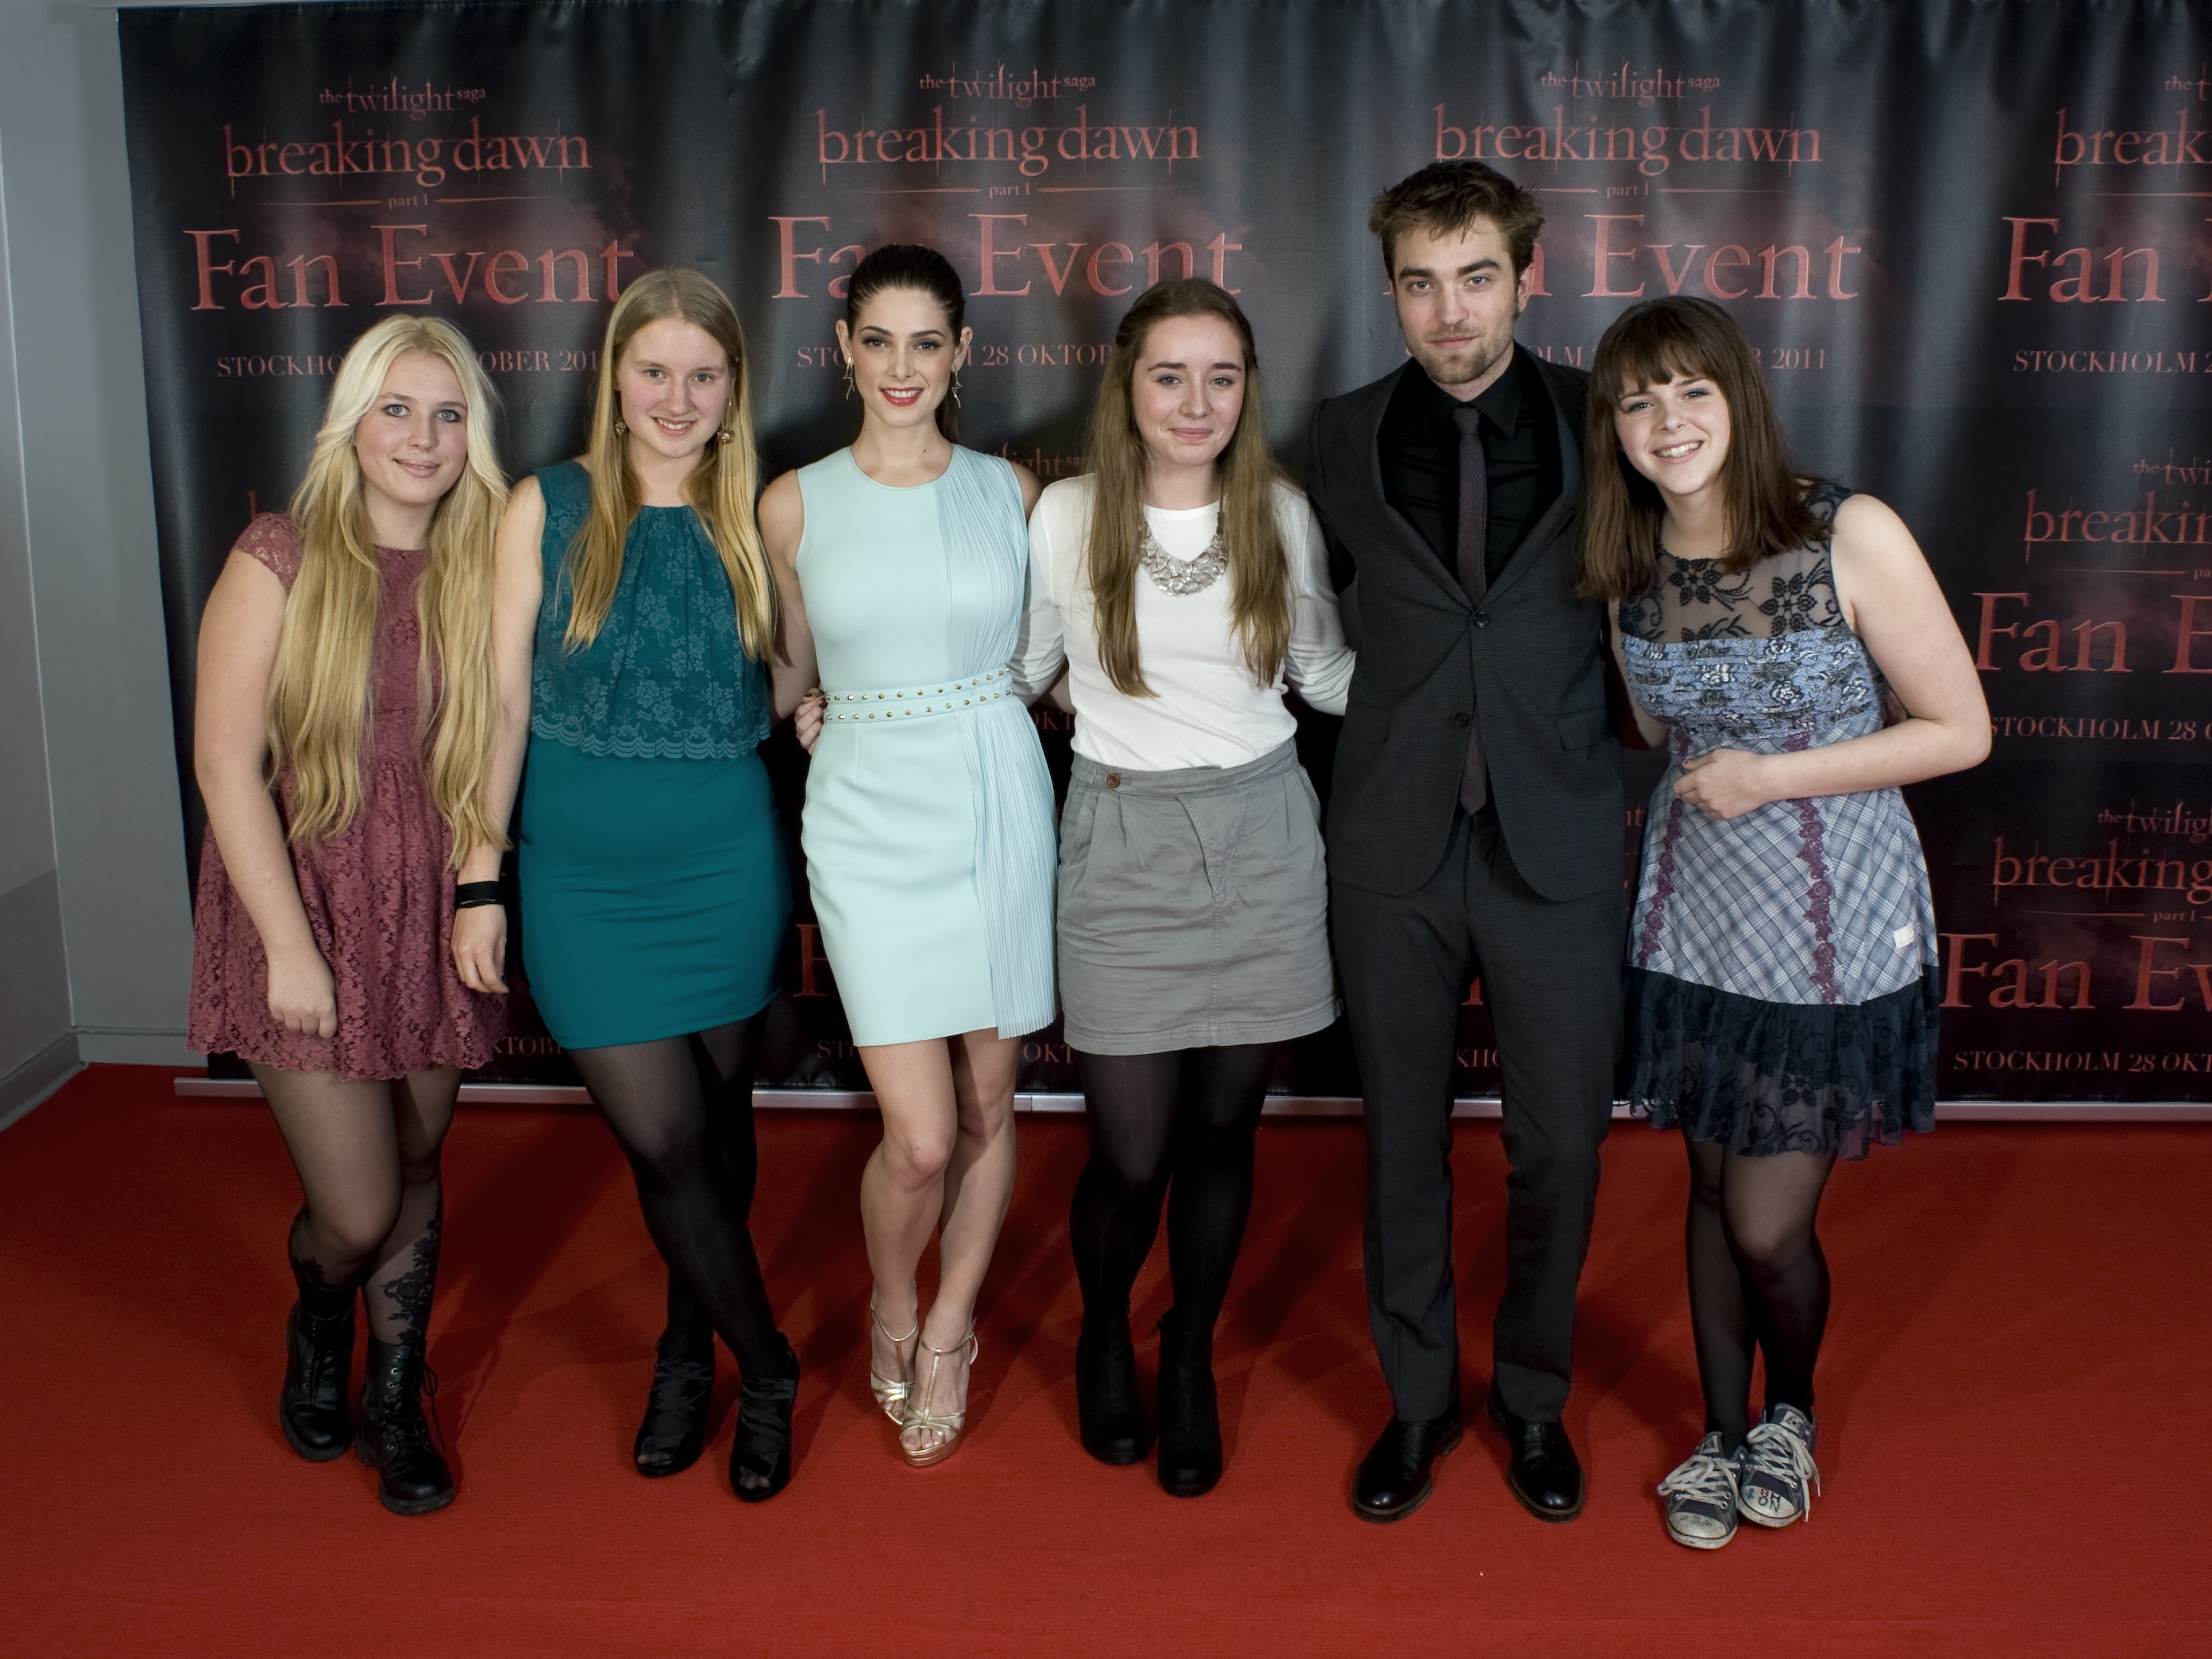 Meet and greet sverige 2 thinking of rob new meet greet pictures of robert pattinson ashley greene in stockholm meet and greet sverige 2 leave a comment m4hsunfo